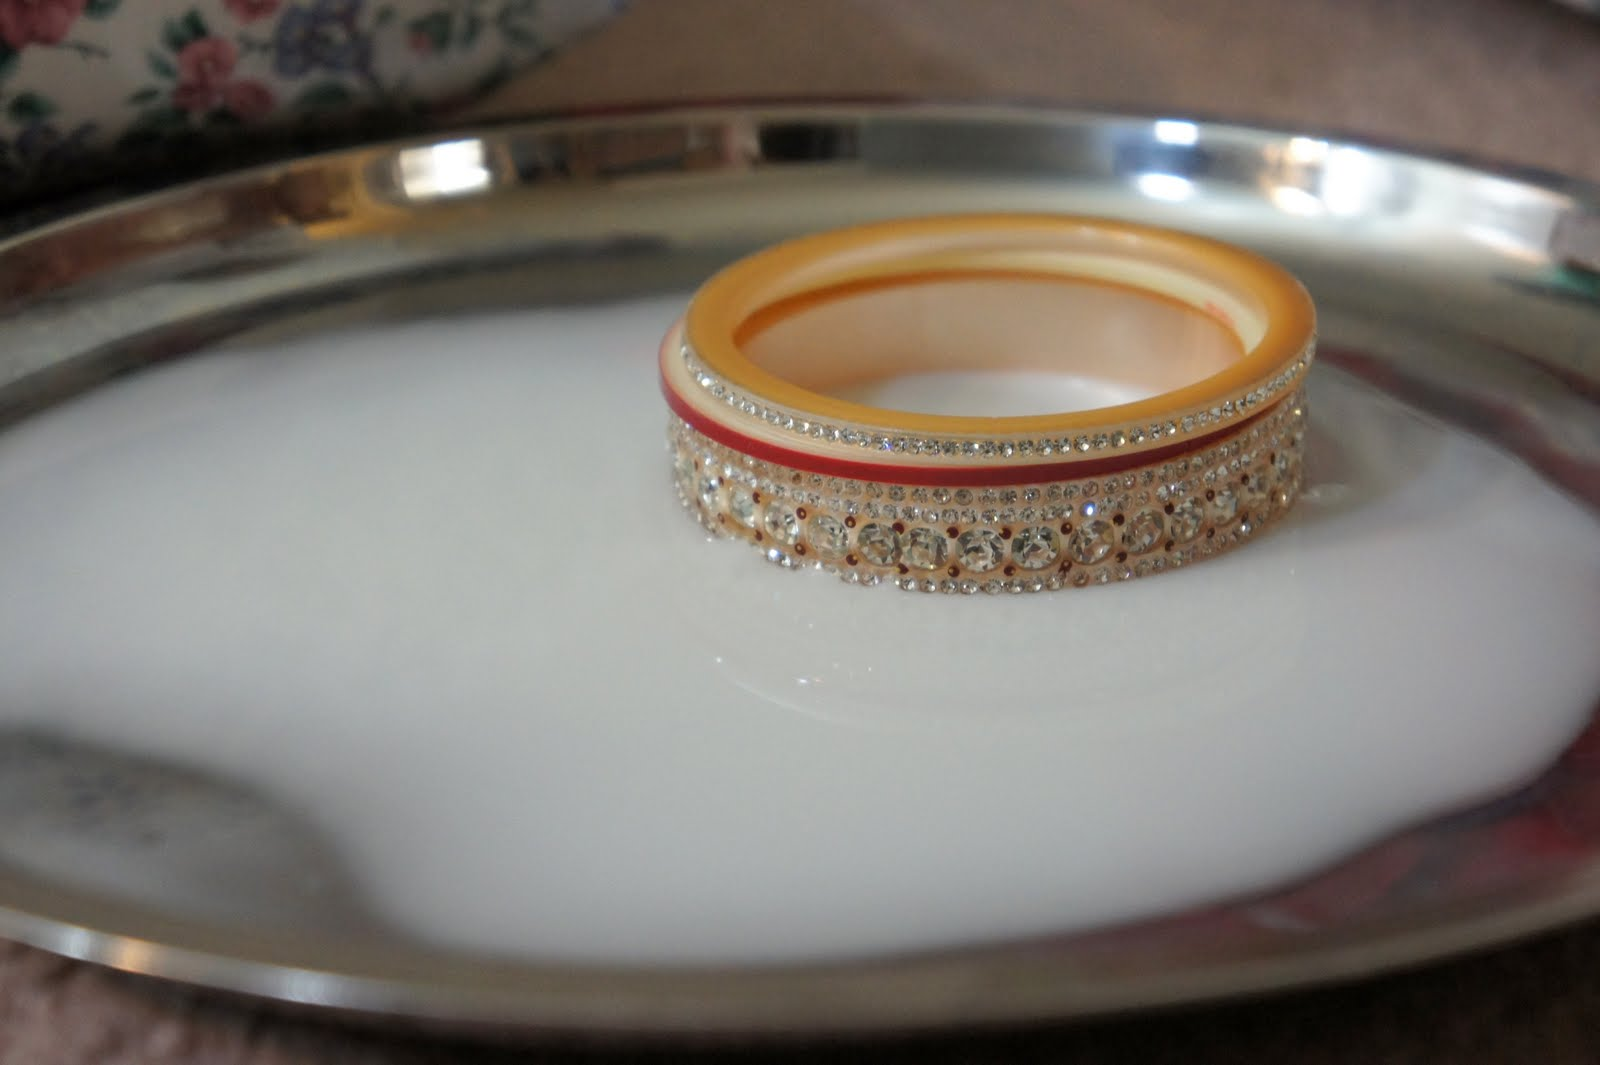 Wedding Ring Plate 98 Epic I present to you